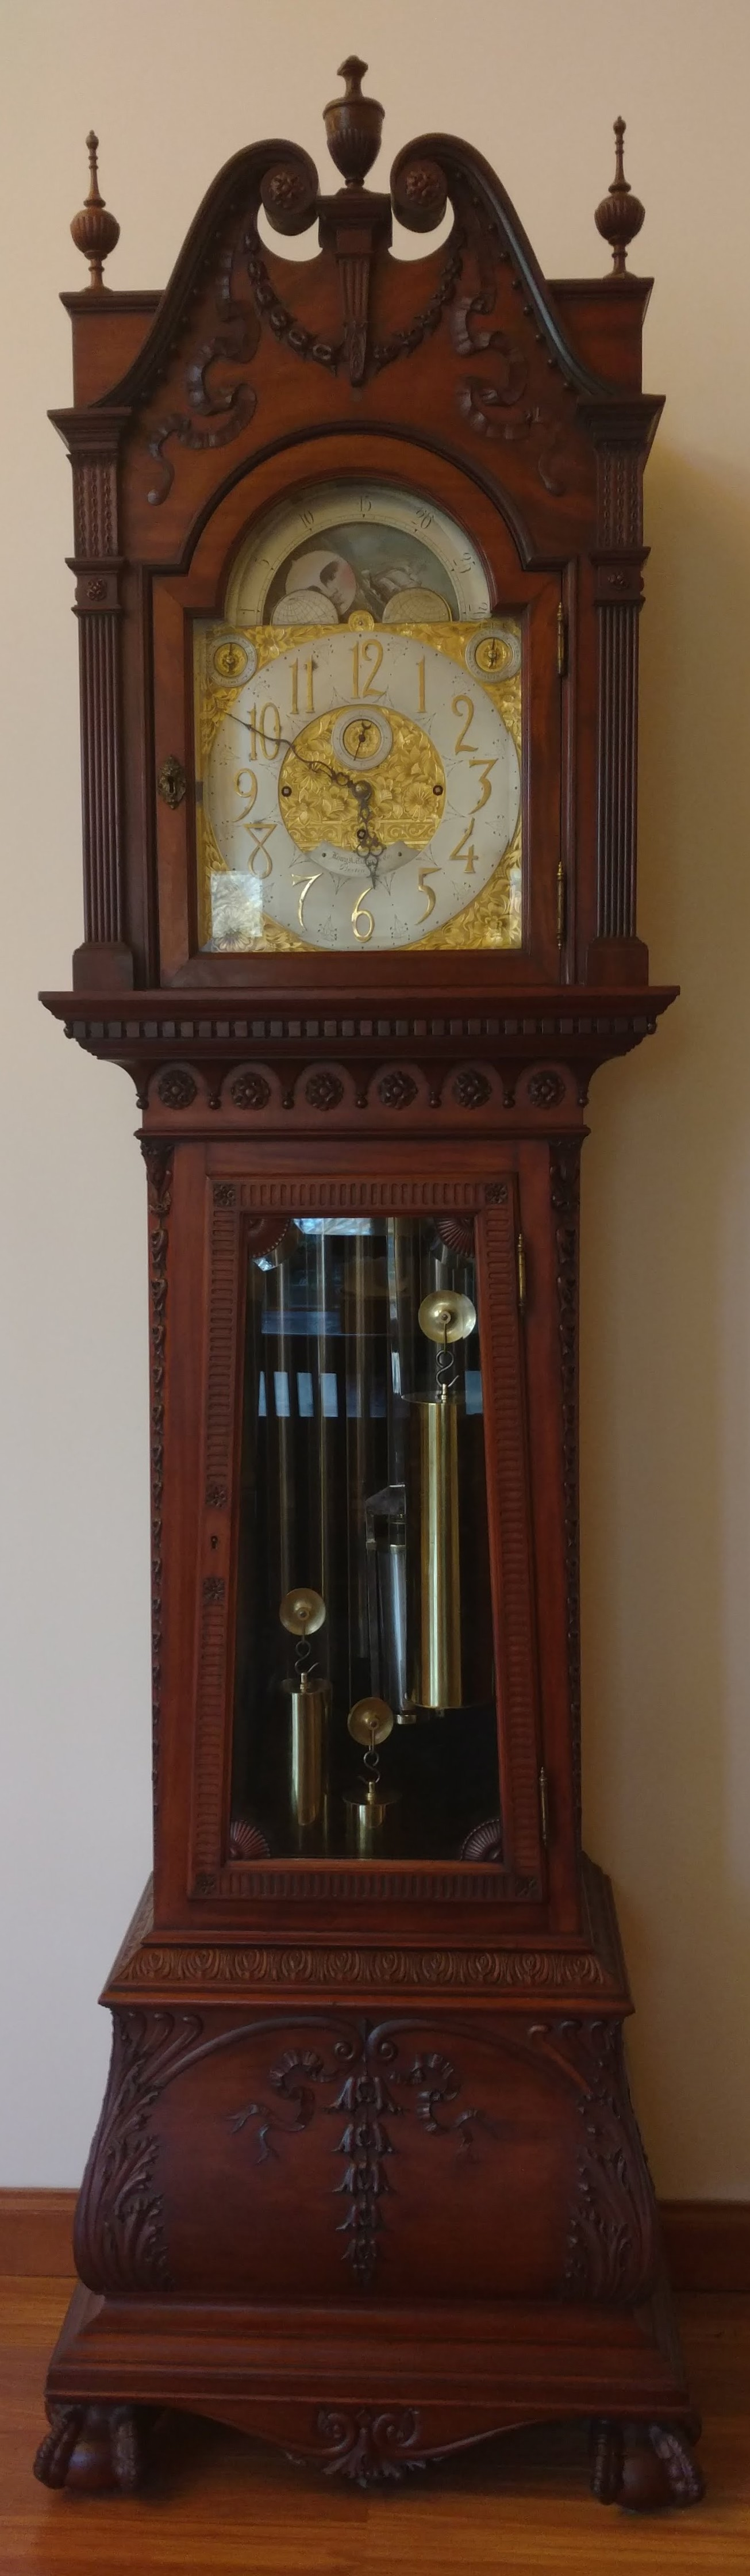 This tall clock was built by Walter Durfree of Boston in 1870. It was given to the library by Mrs. Holbrook R. Davis of Osterville.